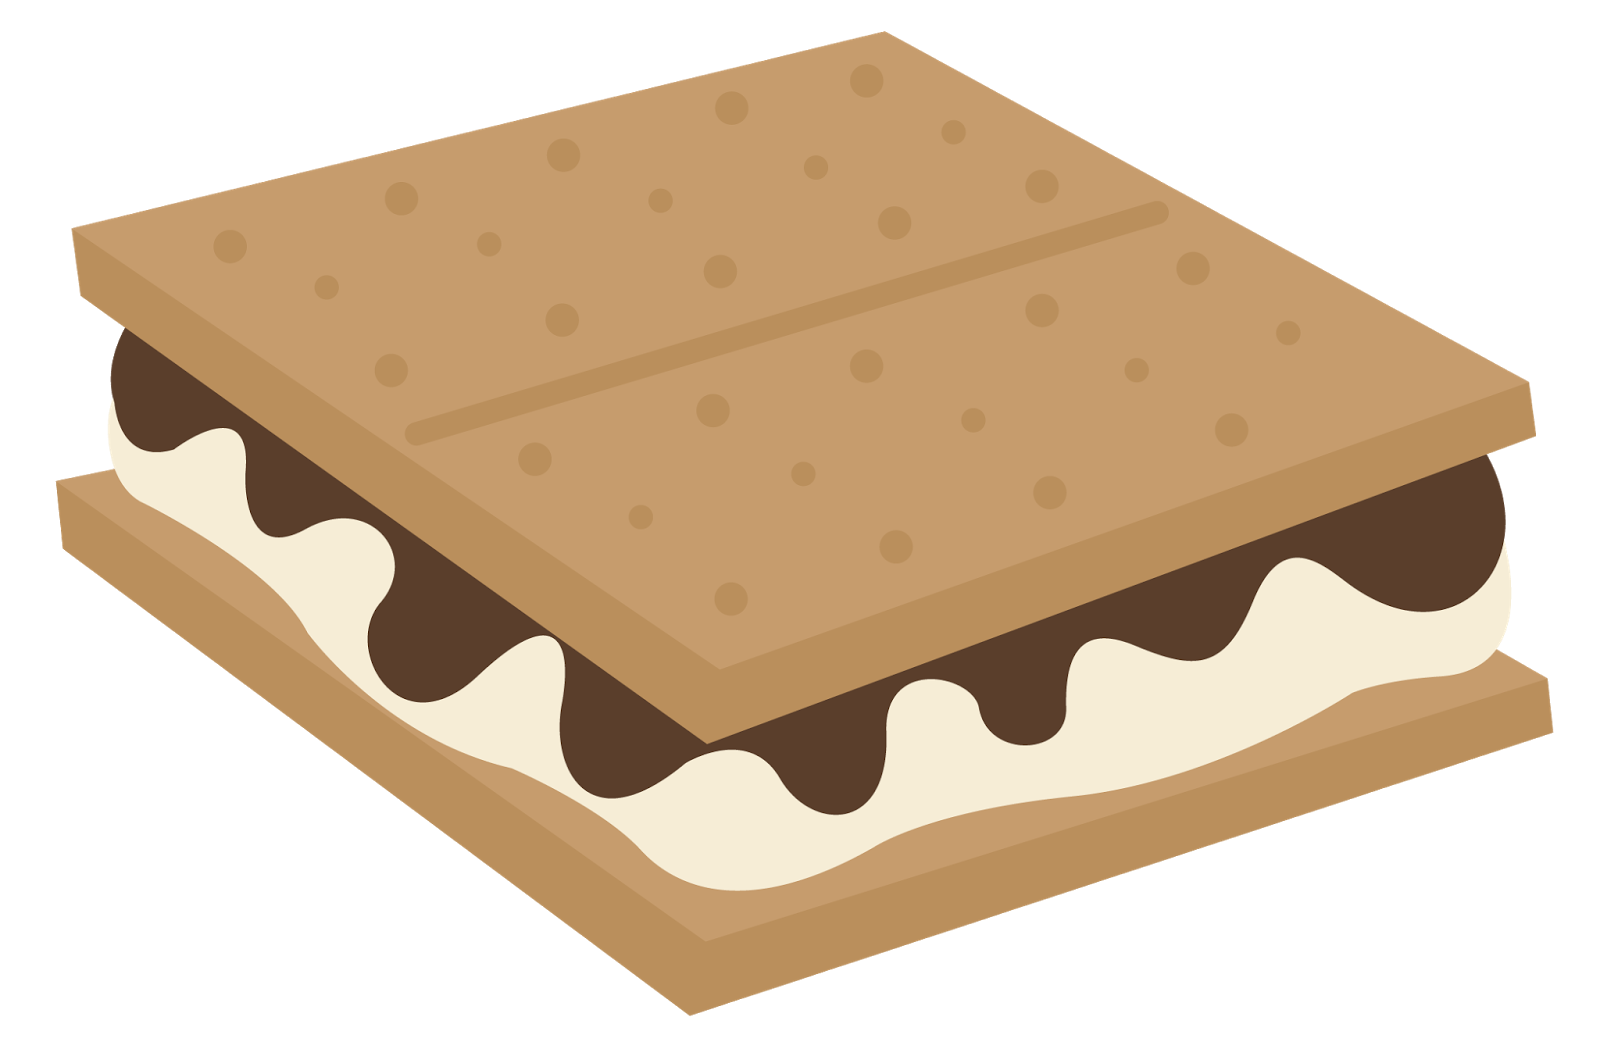 clipart free library smore clipart cartoon #83375116